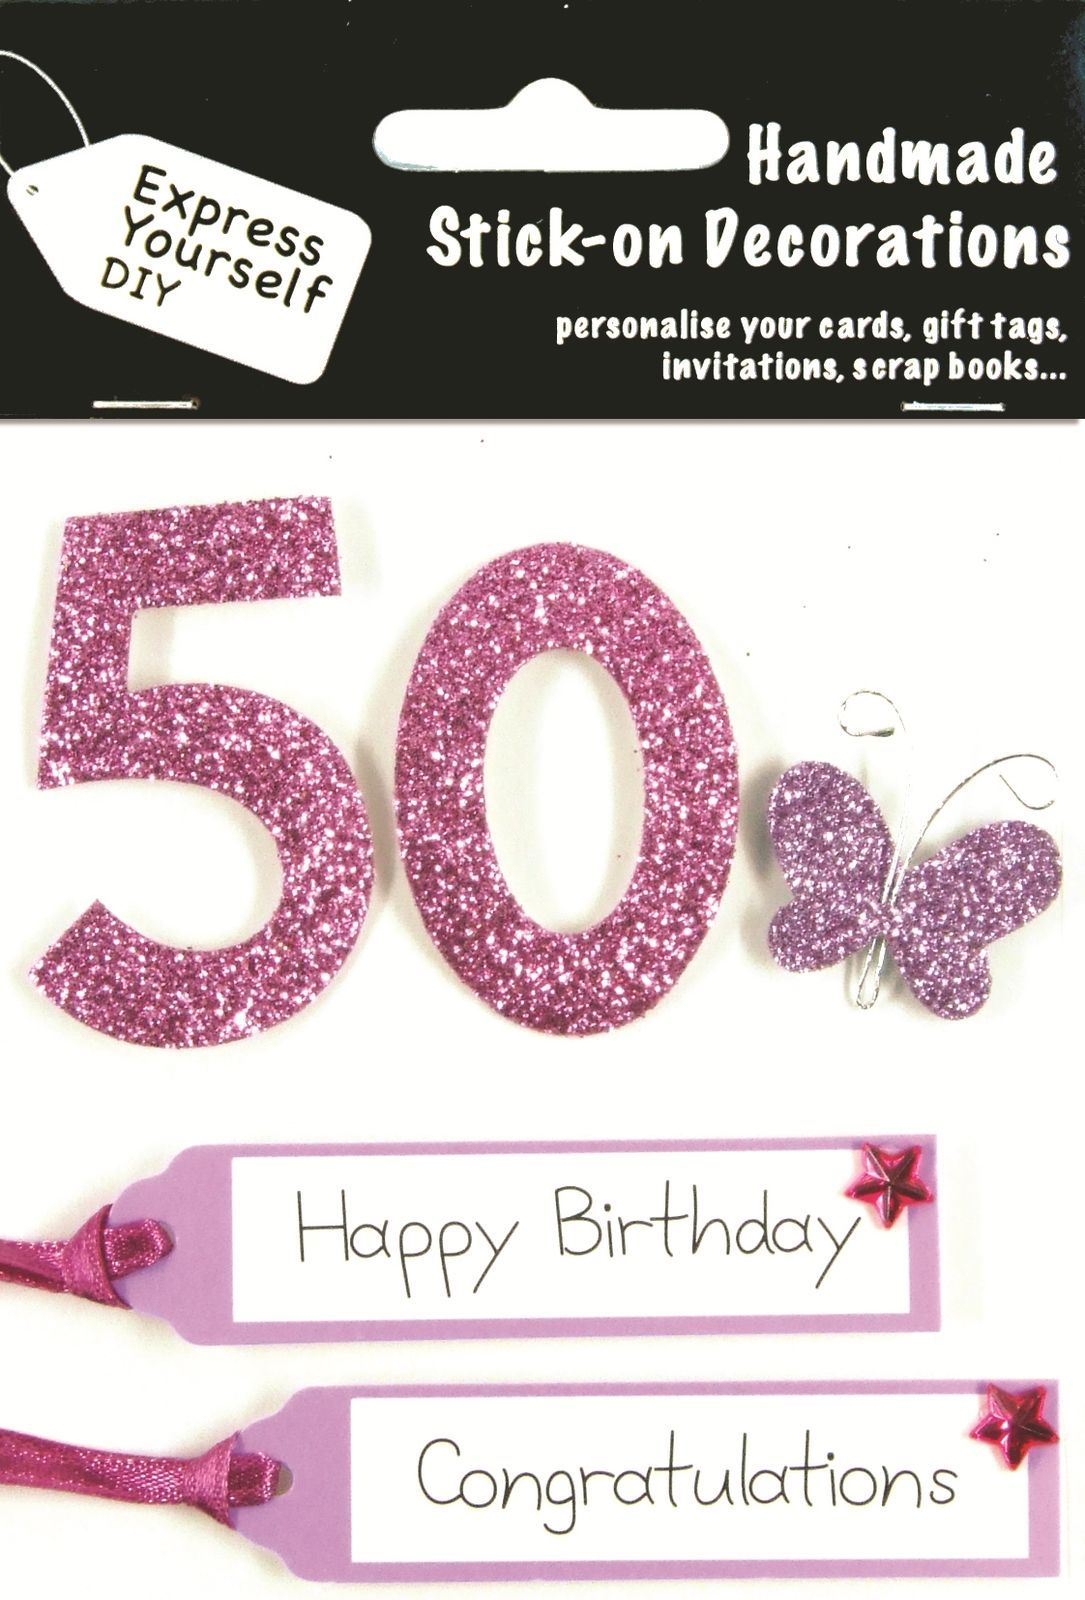 Pink th birthday diy greeting card toppers personalise handmade